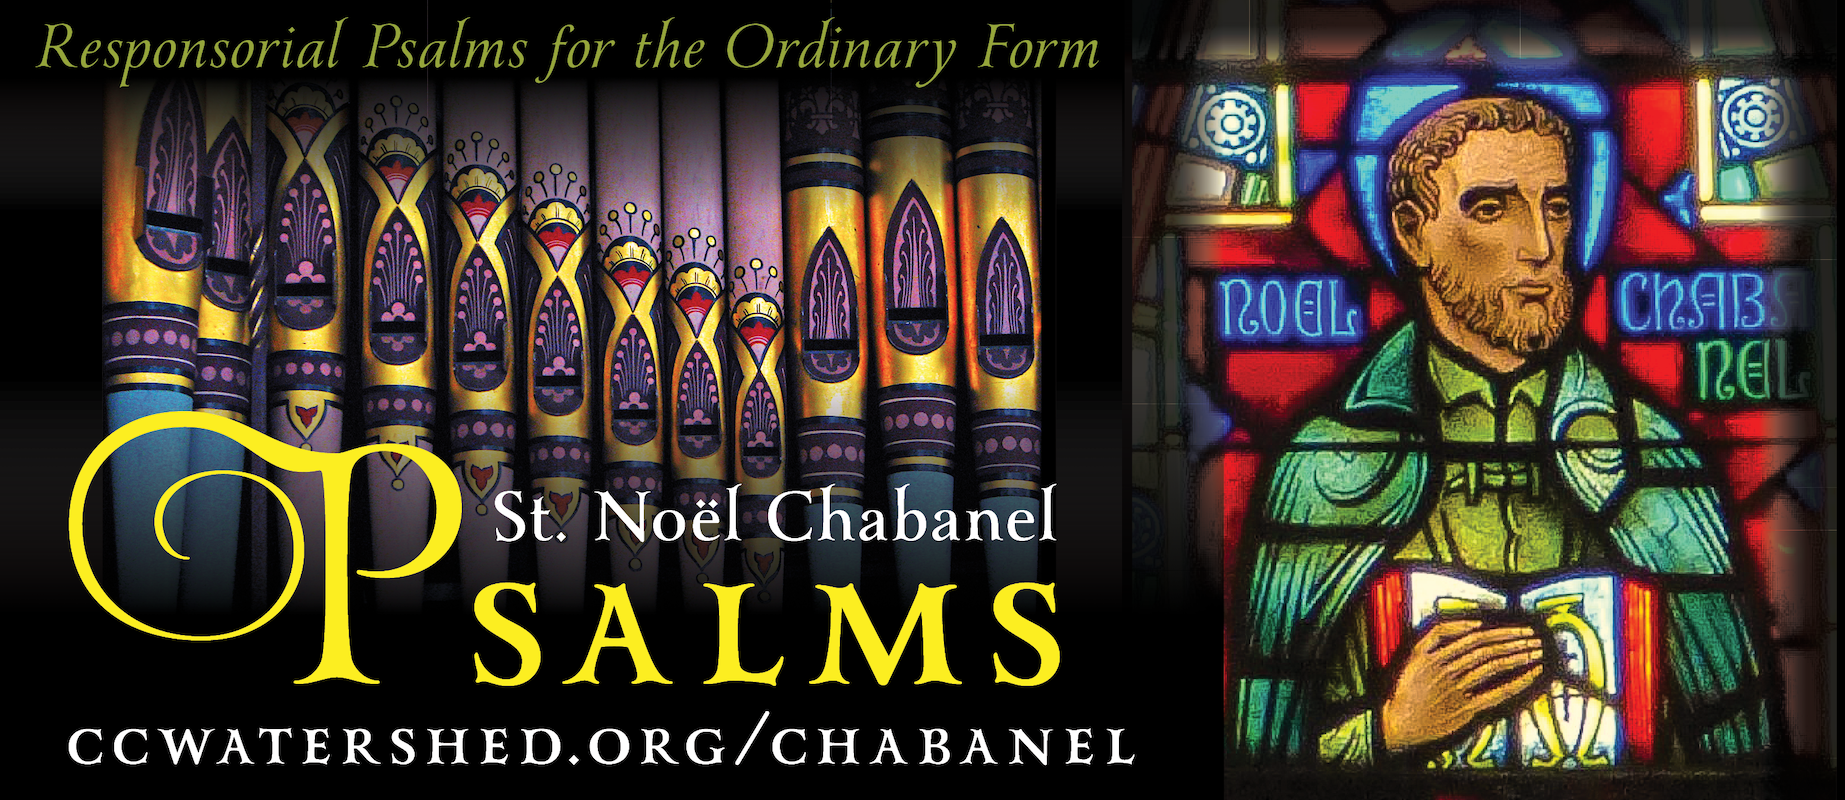 New Edition of Chabanel Responsorial Psalms • Edition: 12 May 2014 — Organist & Vocalist